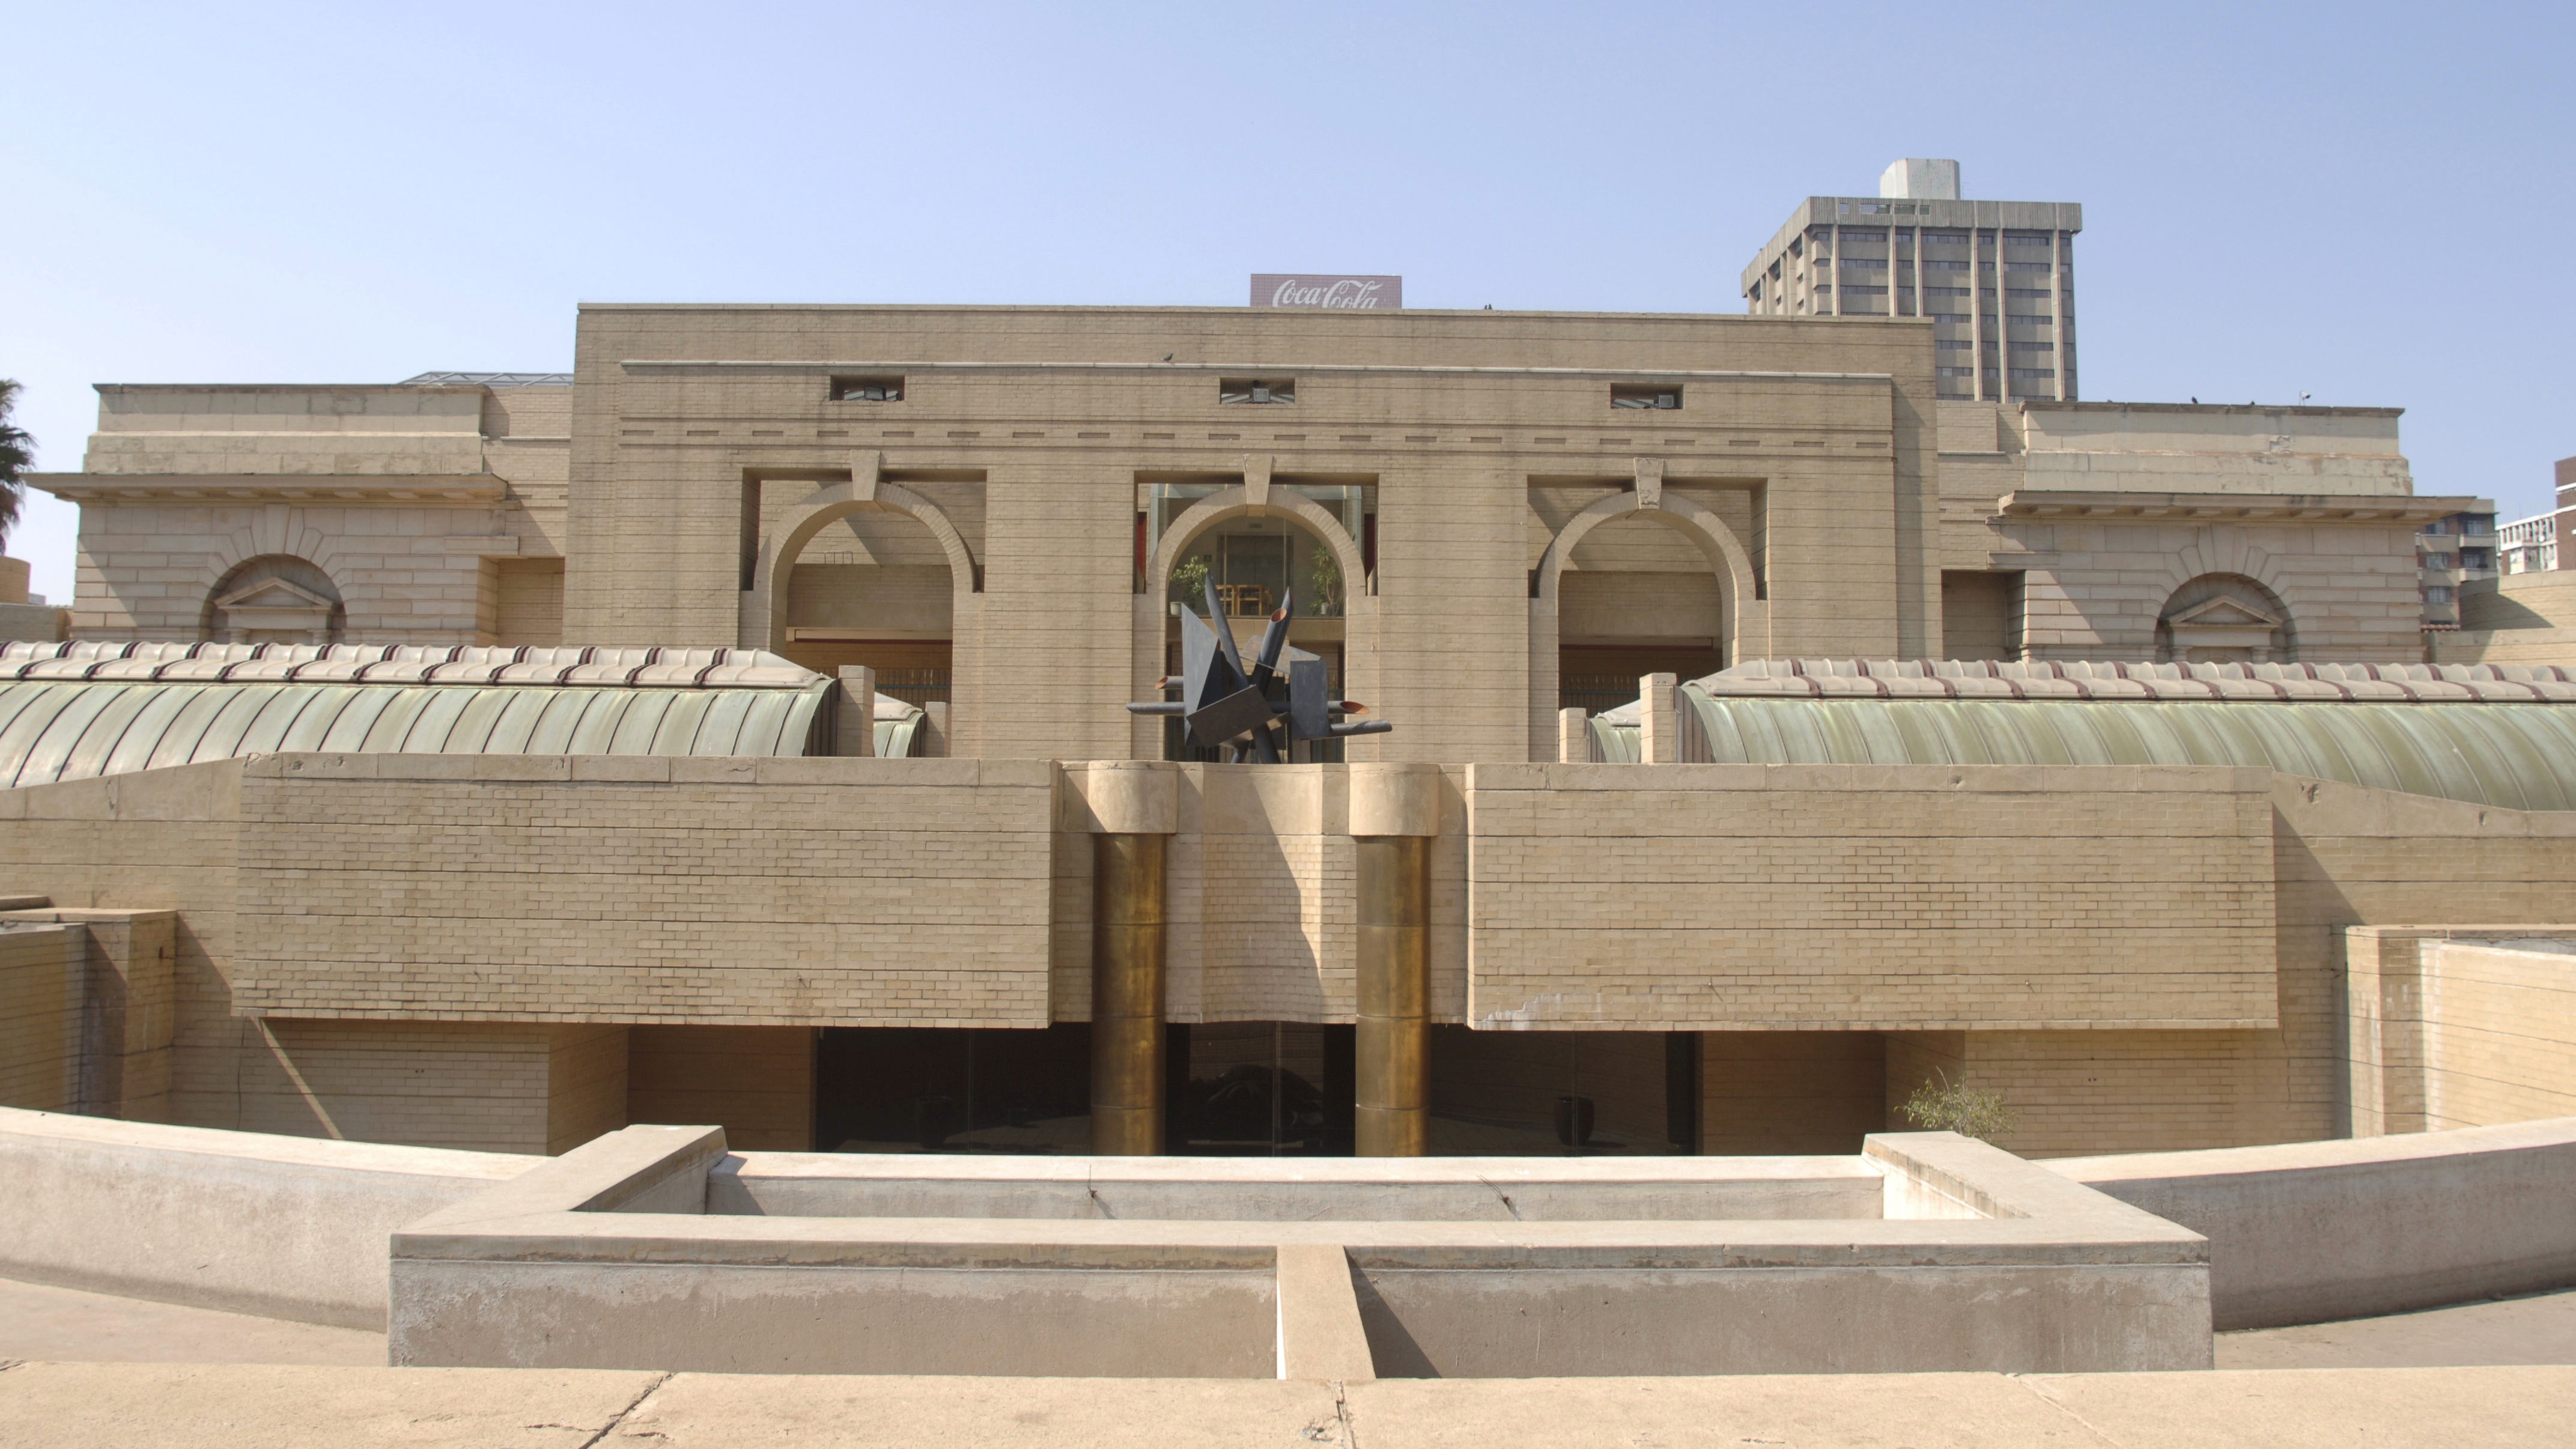 The Johannesburg Art Gallery suffers from neglect despite its impressive history and collection